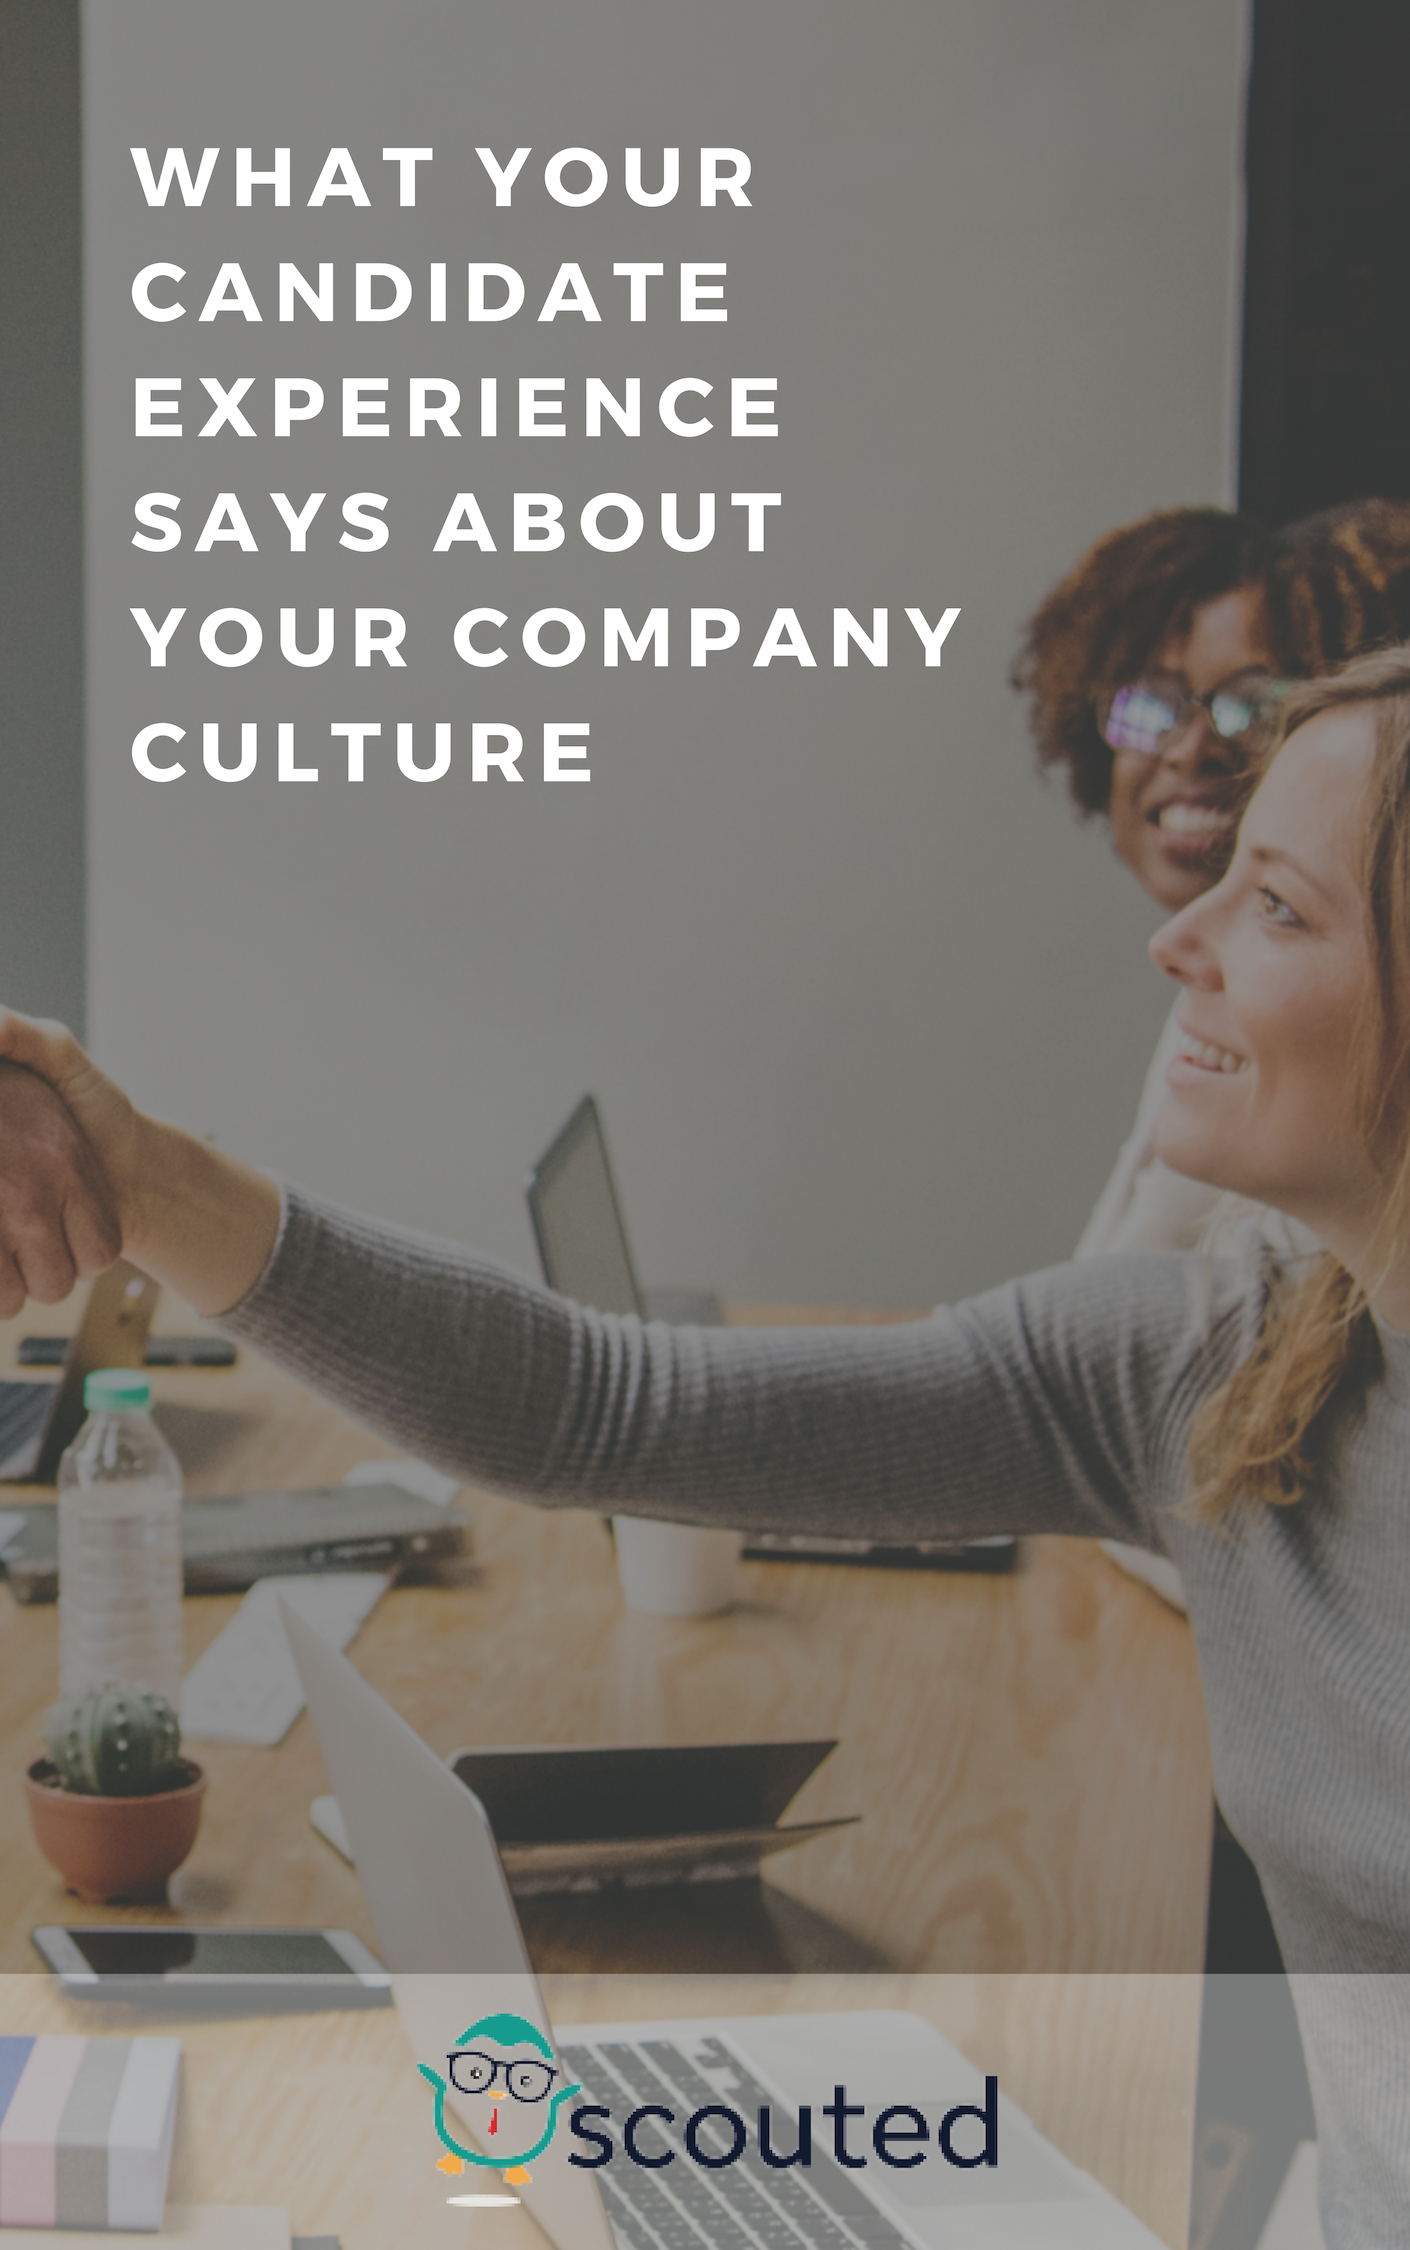 We're hearing a lot these days about candidate experience and company culture. Both have been identified as keys to successful recruiting. Most job seekers care deeply about the type of culture your company has, and there's an increasing body of research to suggest that your candidate experience has a powerful effect on your ability to attract and retain talent.